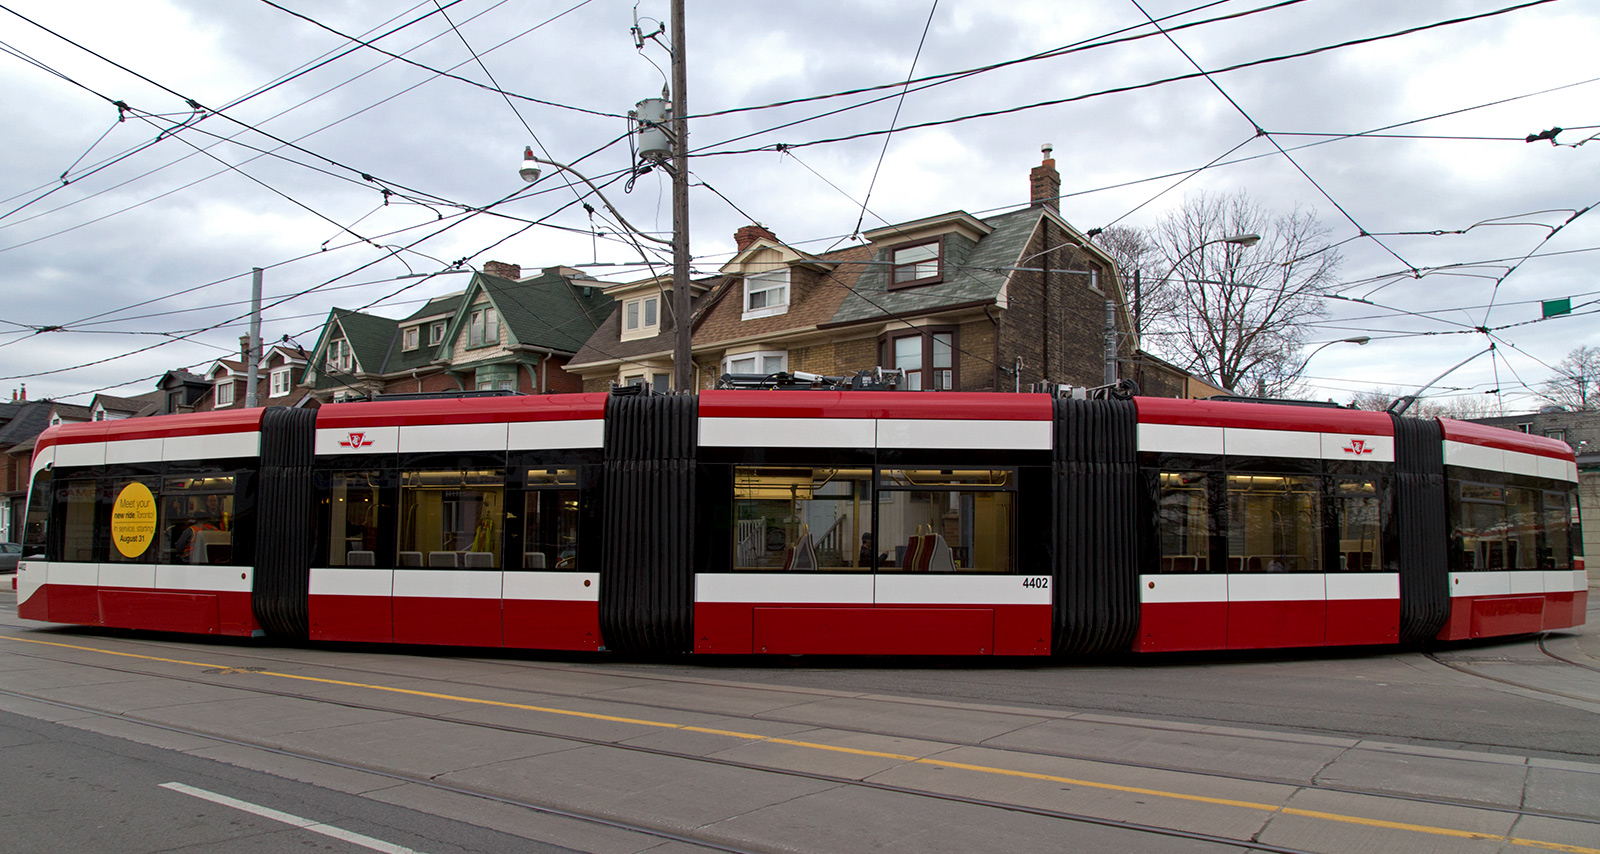 20140506. My first on-street view of the TTC's new Toronto Flexity Outlook streetcar (exiting Bathurst Stn).